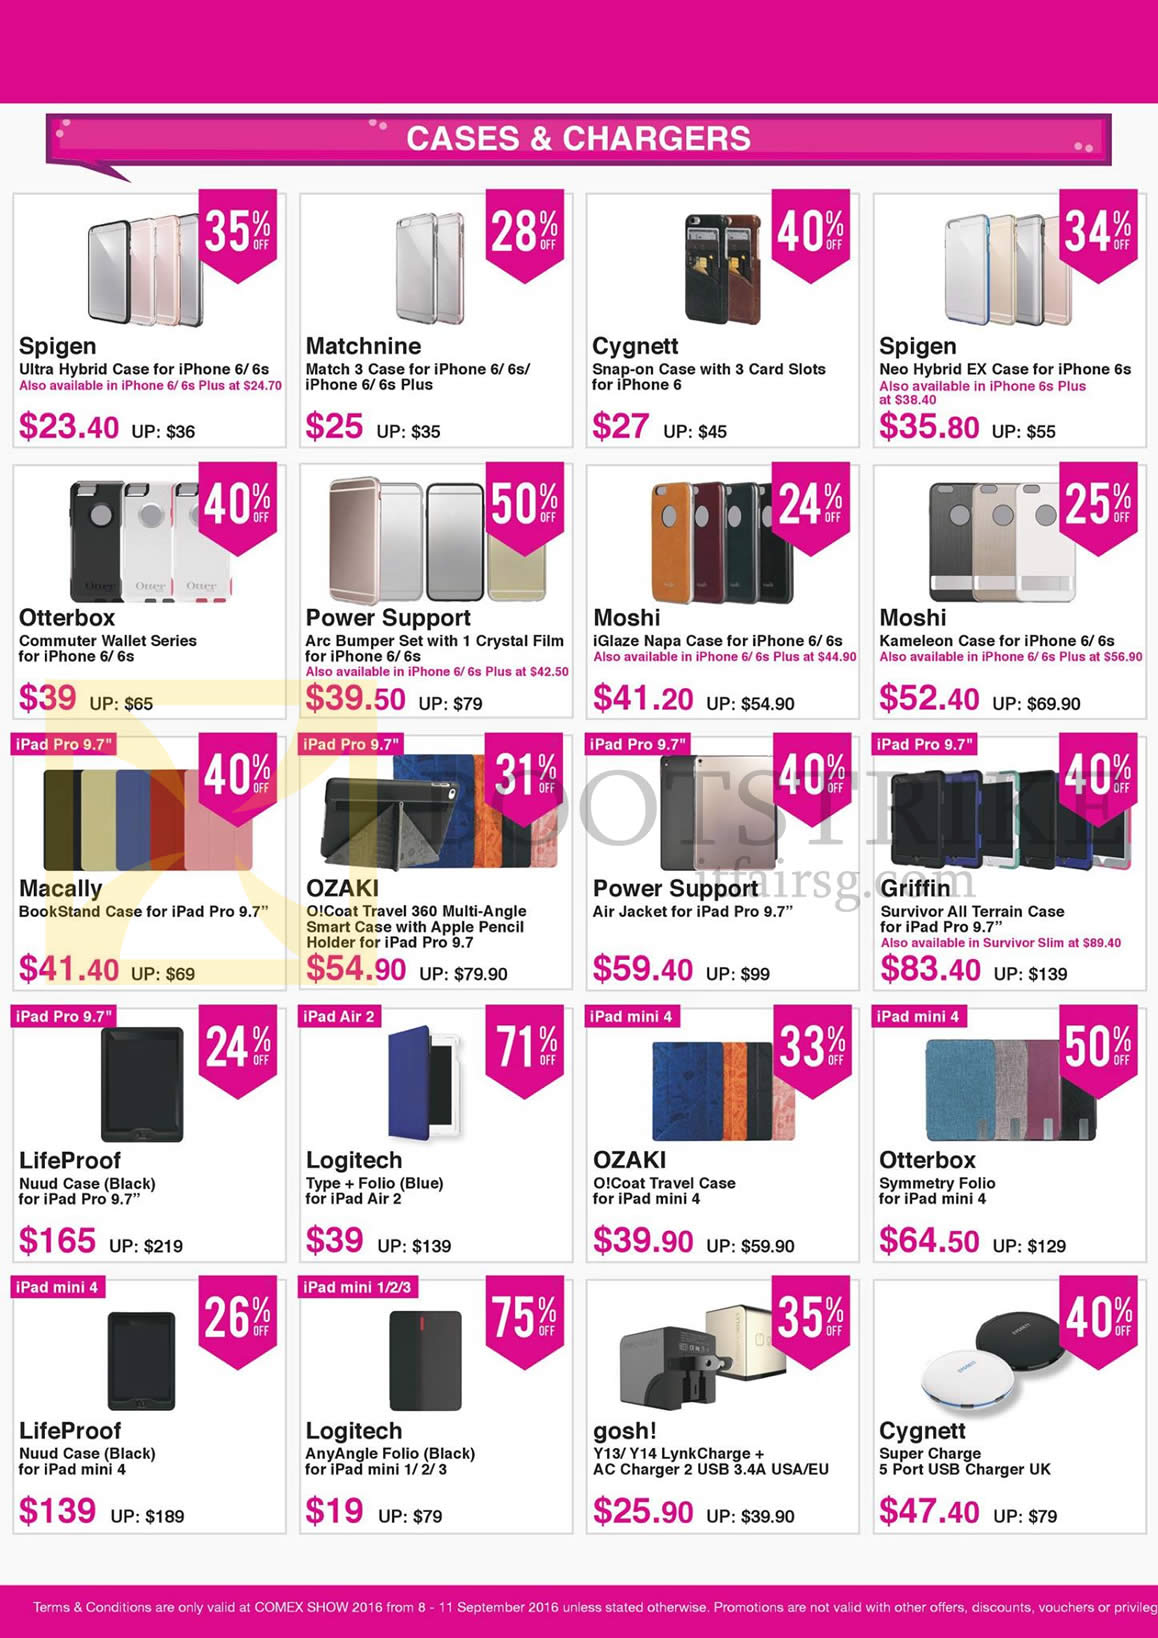 COMEX 2016 price list image brochure of Nubox Accessories Cases, Chargers, Spigen, Matchnine, Cygnett, Otterbox, Power Support, Moshi, Griffin, Ozaki, Macally, LifeProof, Logitech